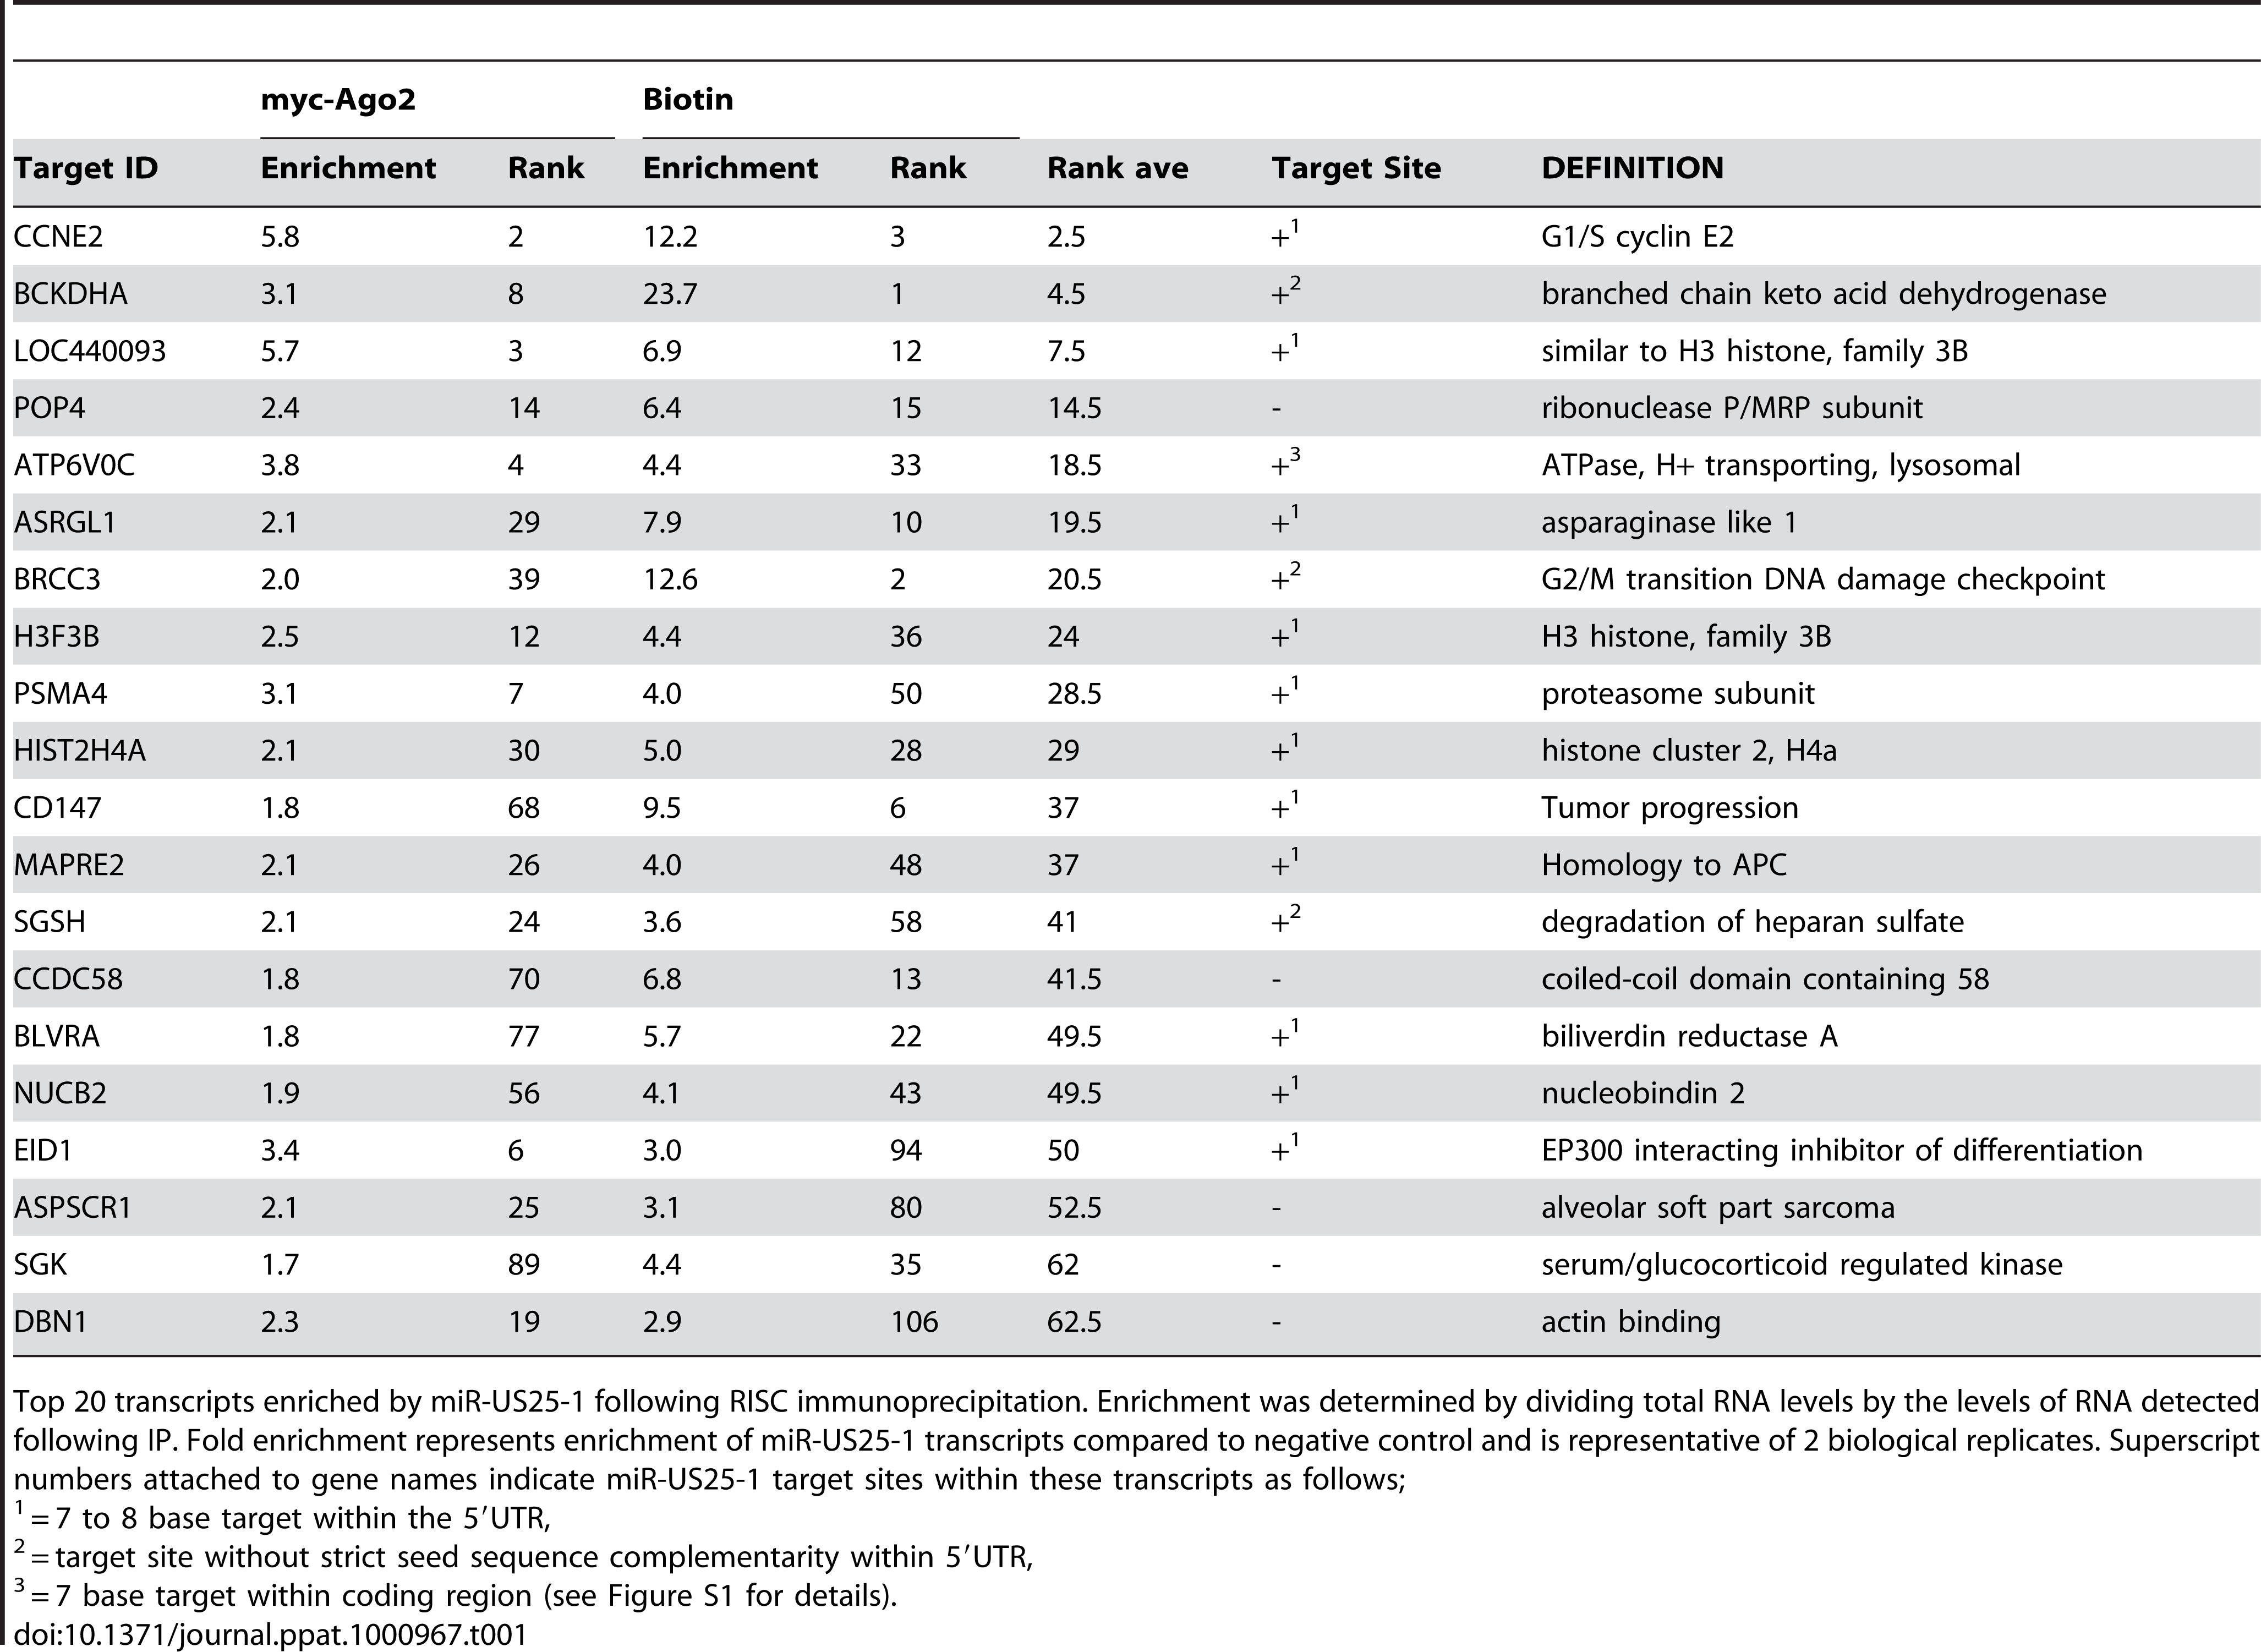 Top 20 ranked cellular targets of miR-US25-1.